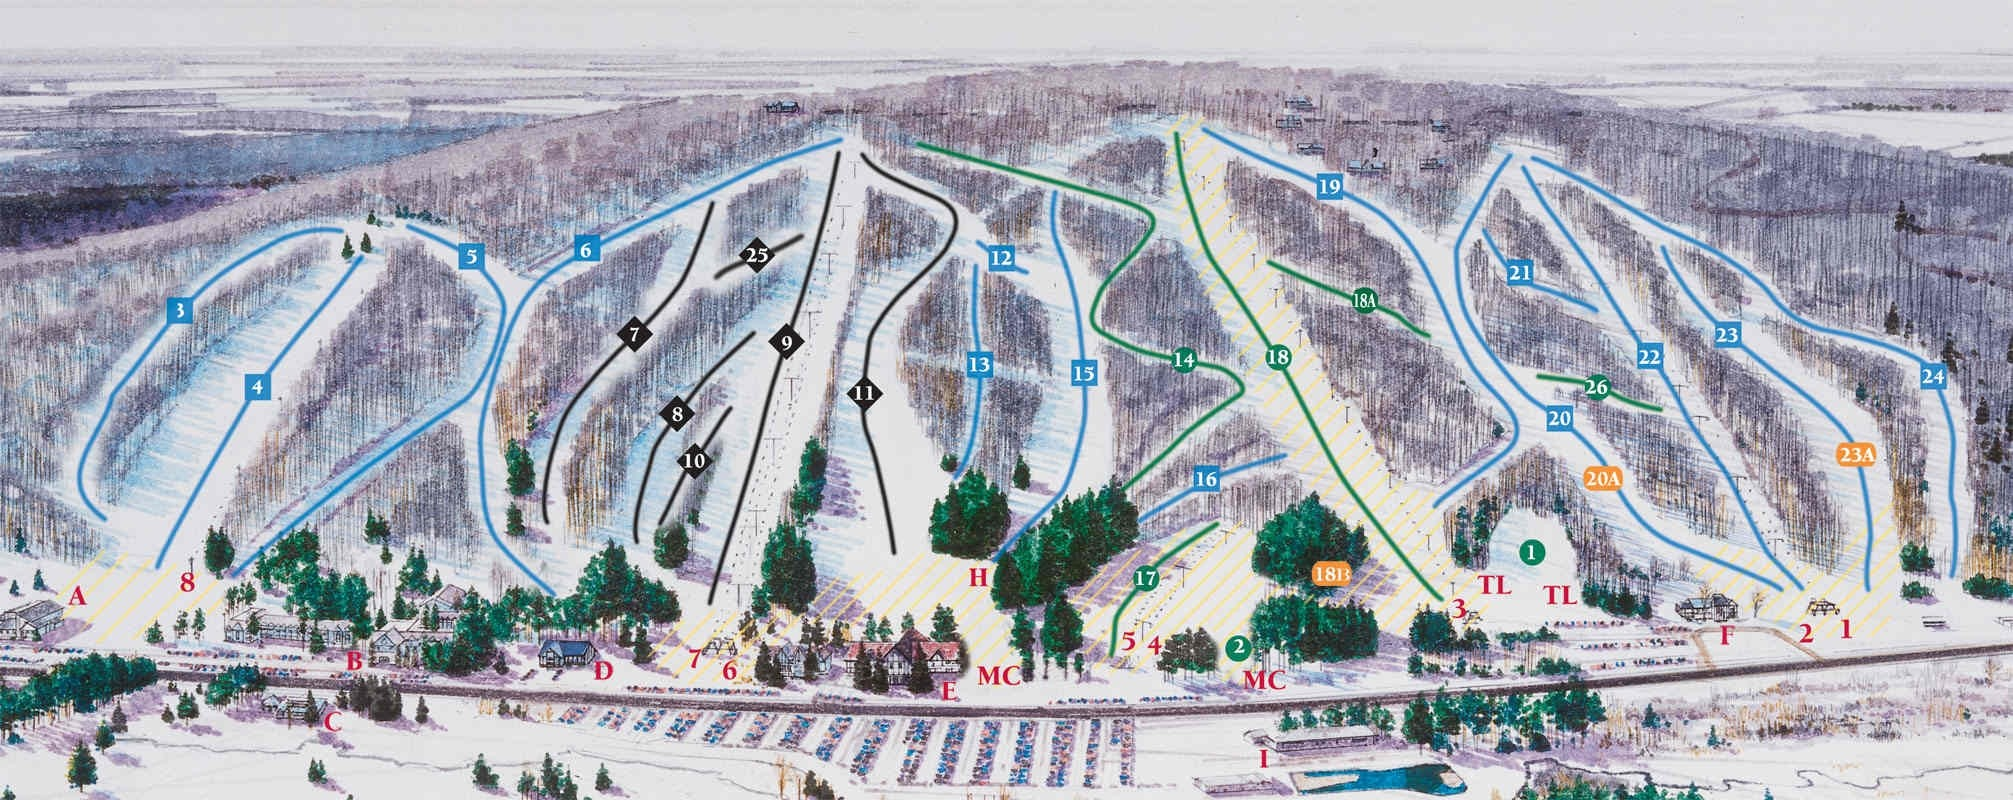 peek-n-peak-ski-trail-map